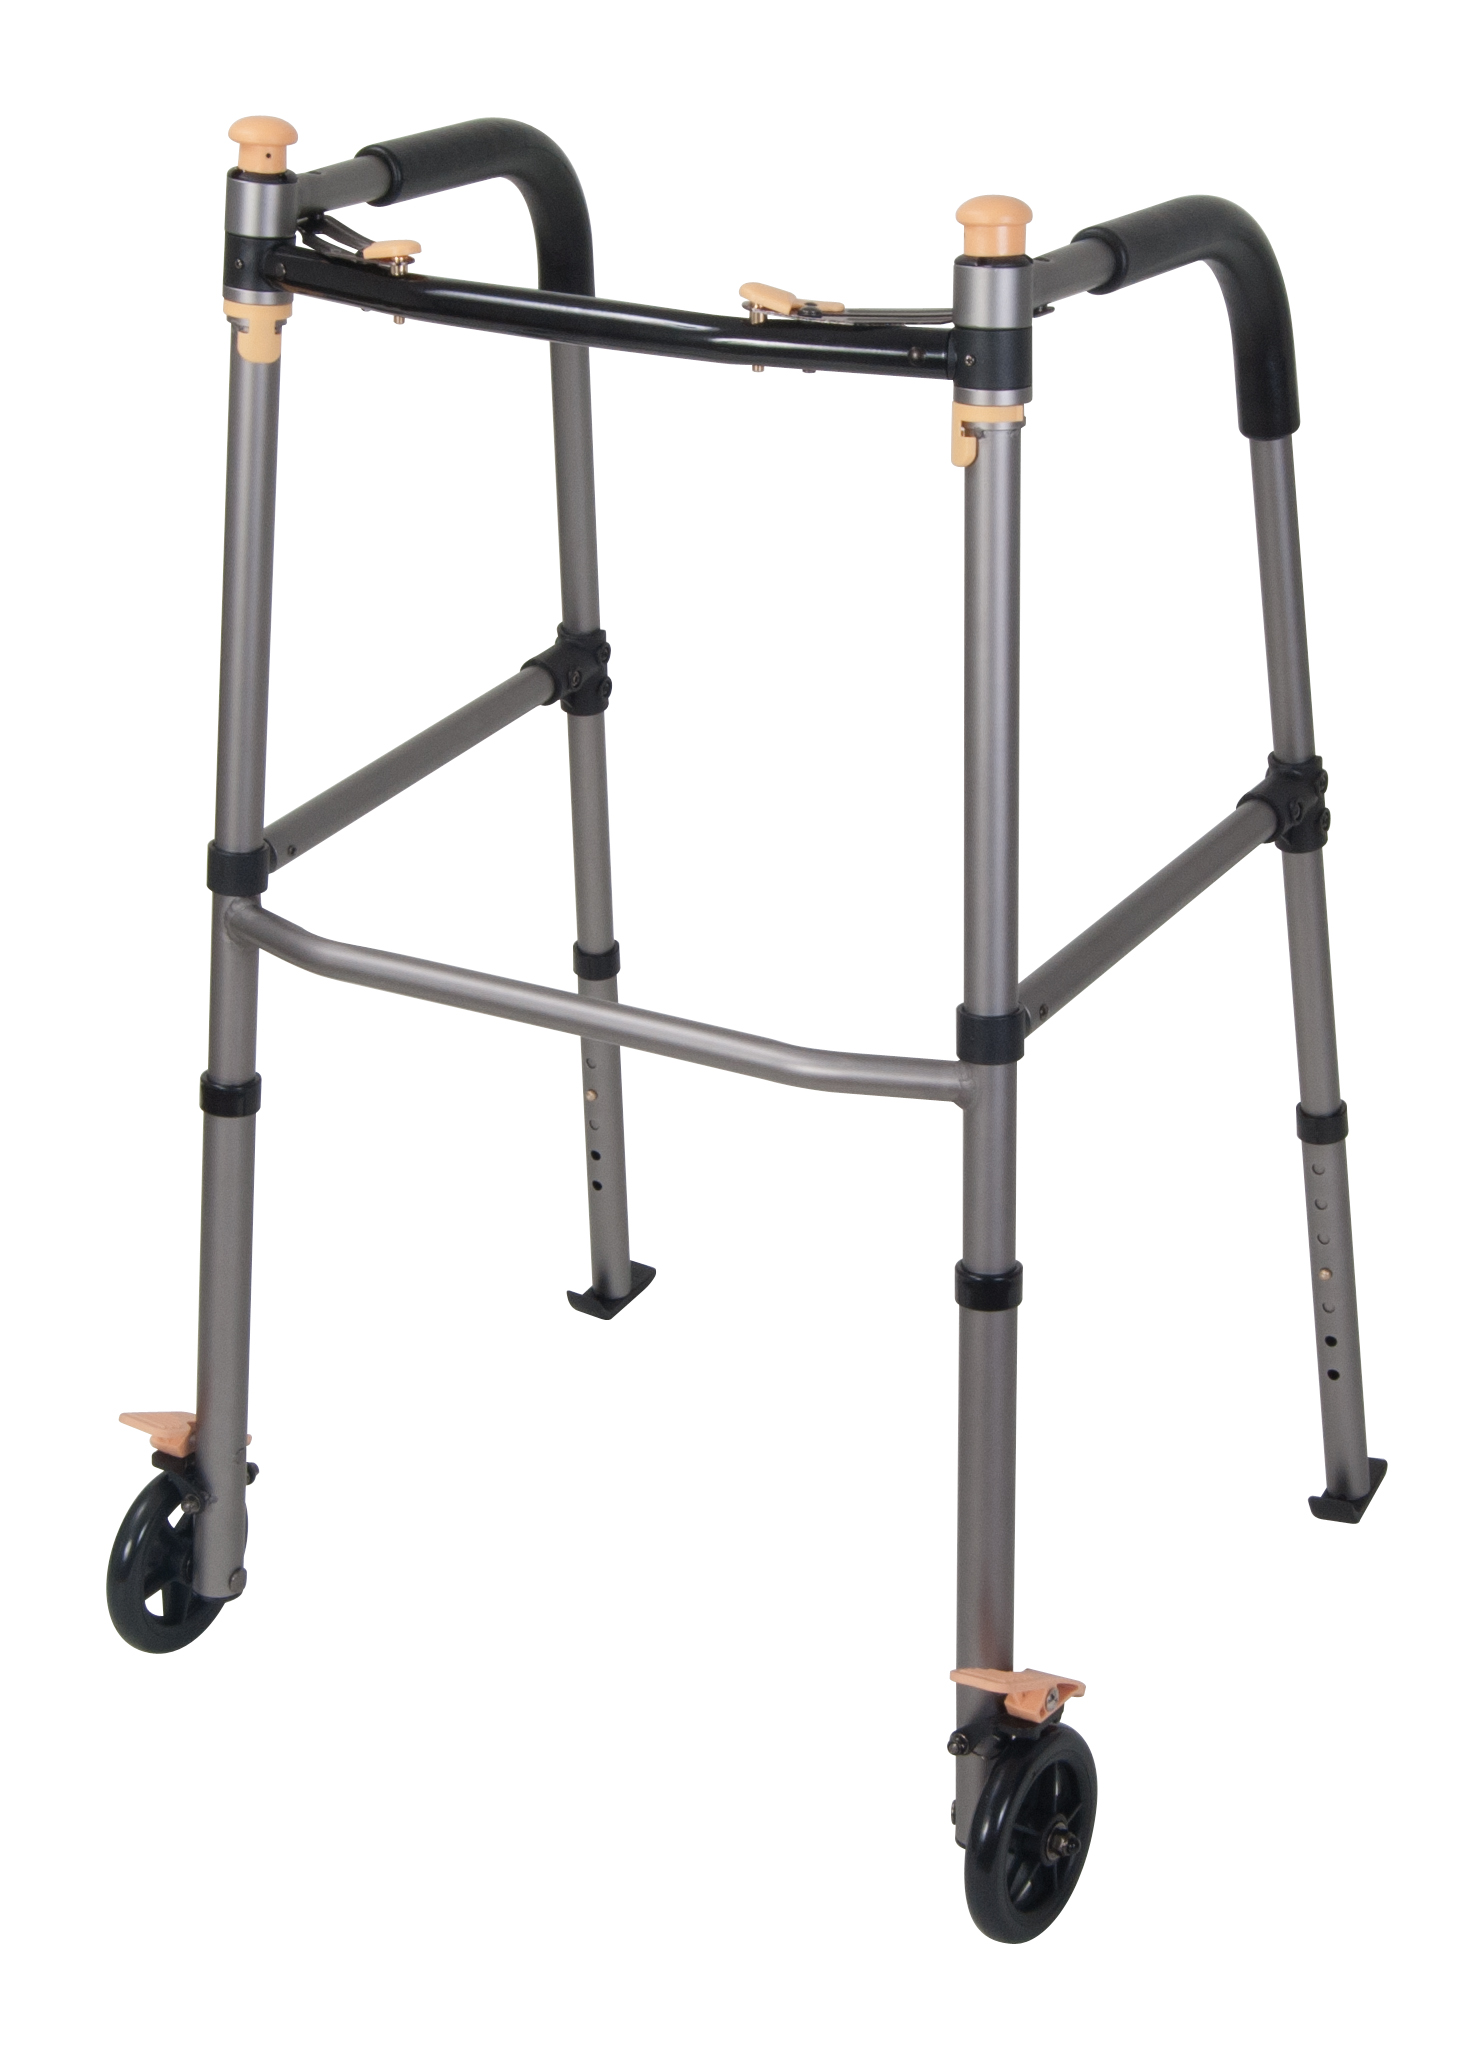 lift-walker-with-retractable-stand-assist-bars-10277lw-drive-medical-2.jpg